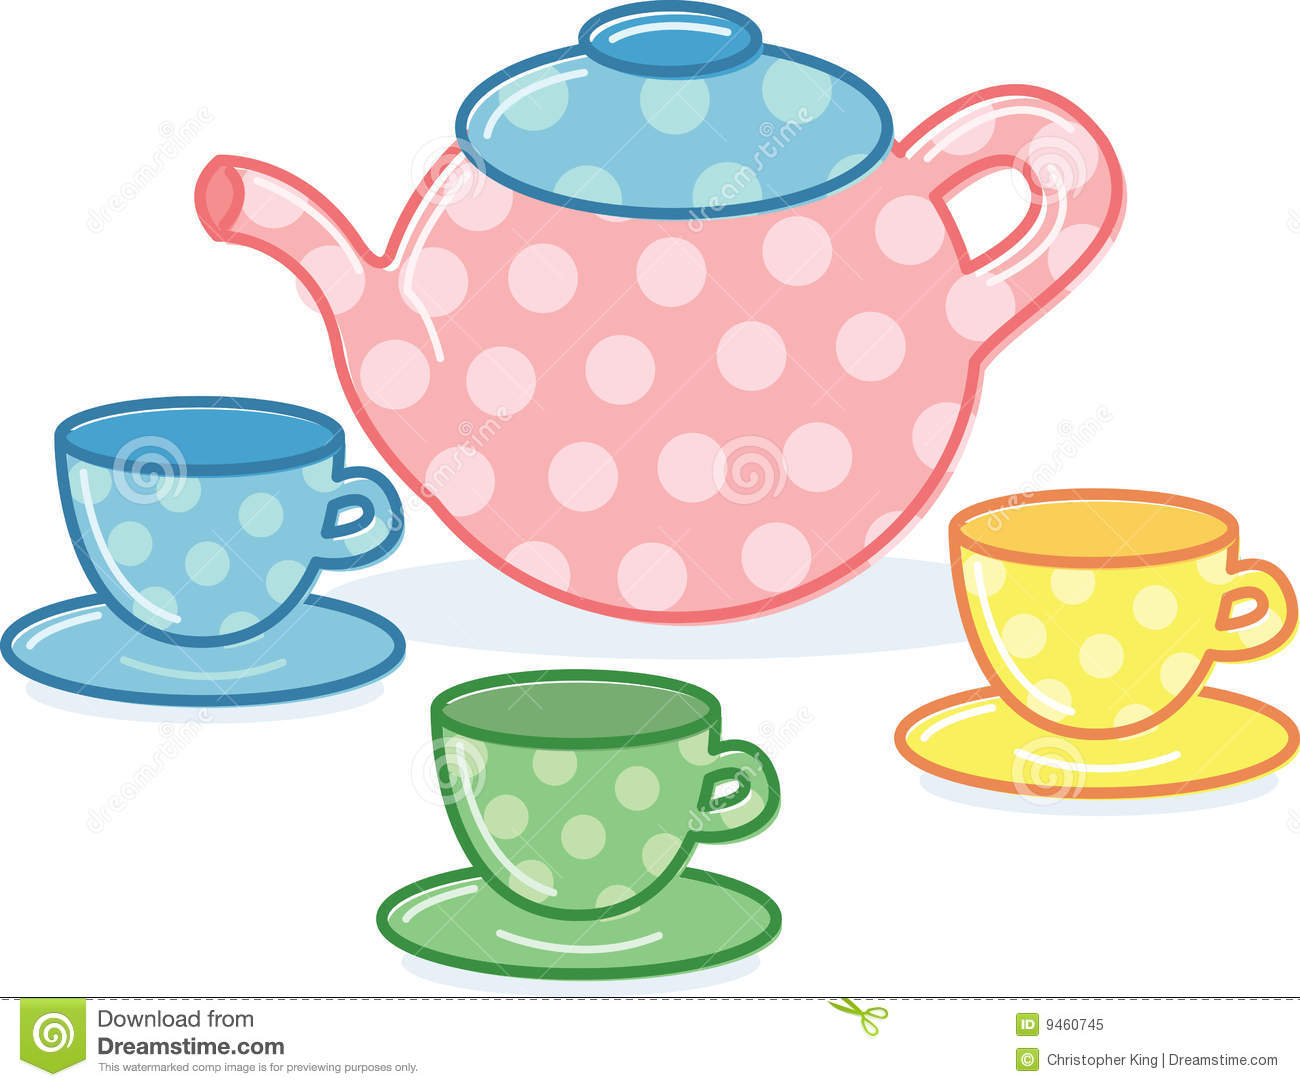 Cute Classic Style Tea Pot And Cups Illustration Royalty Free Stock ...